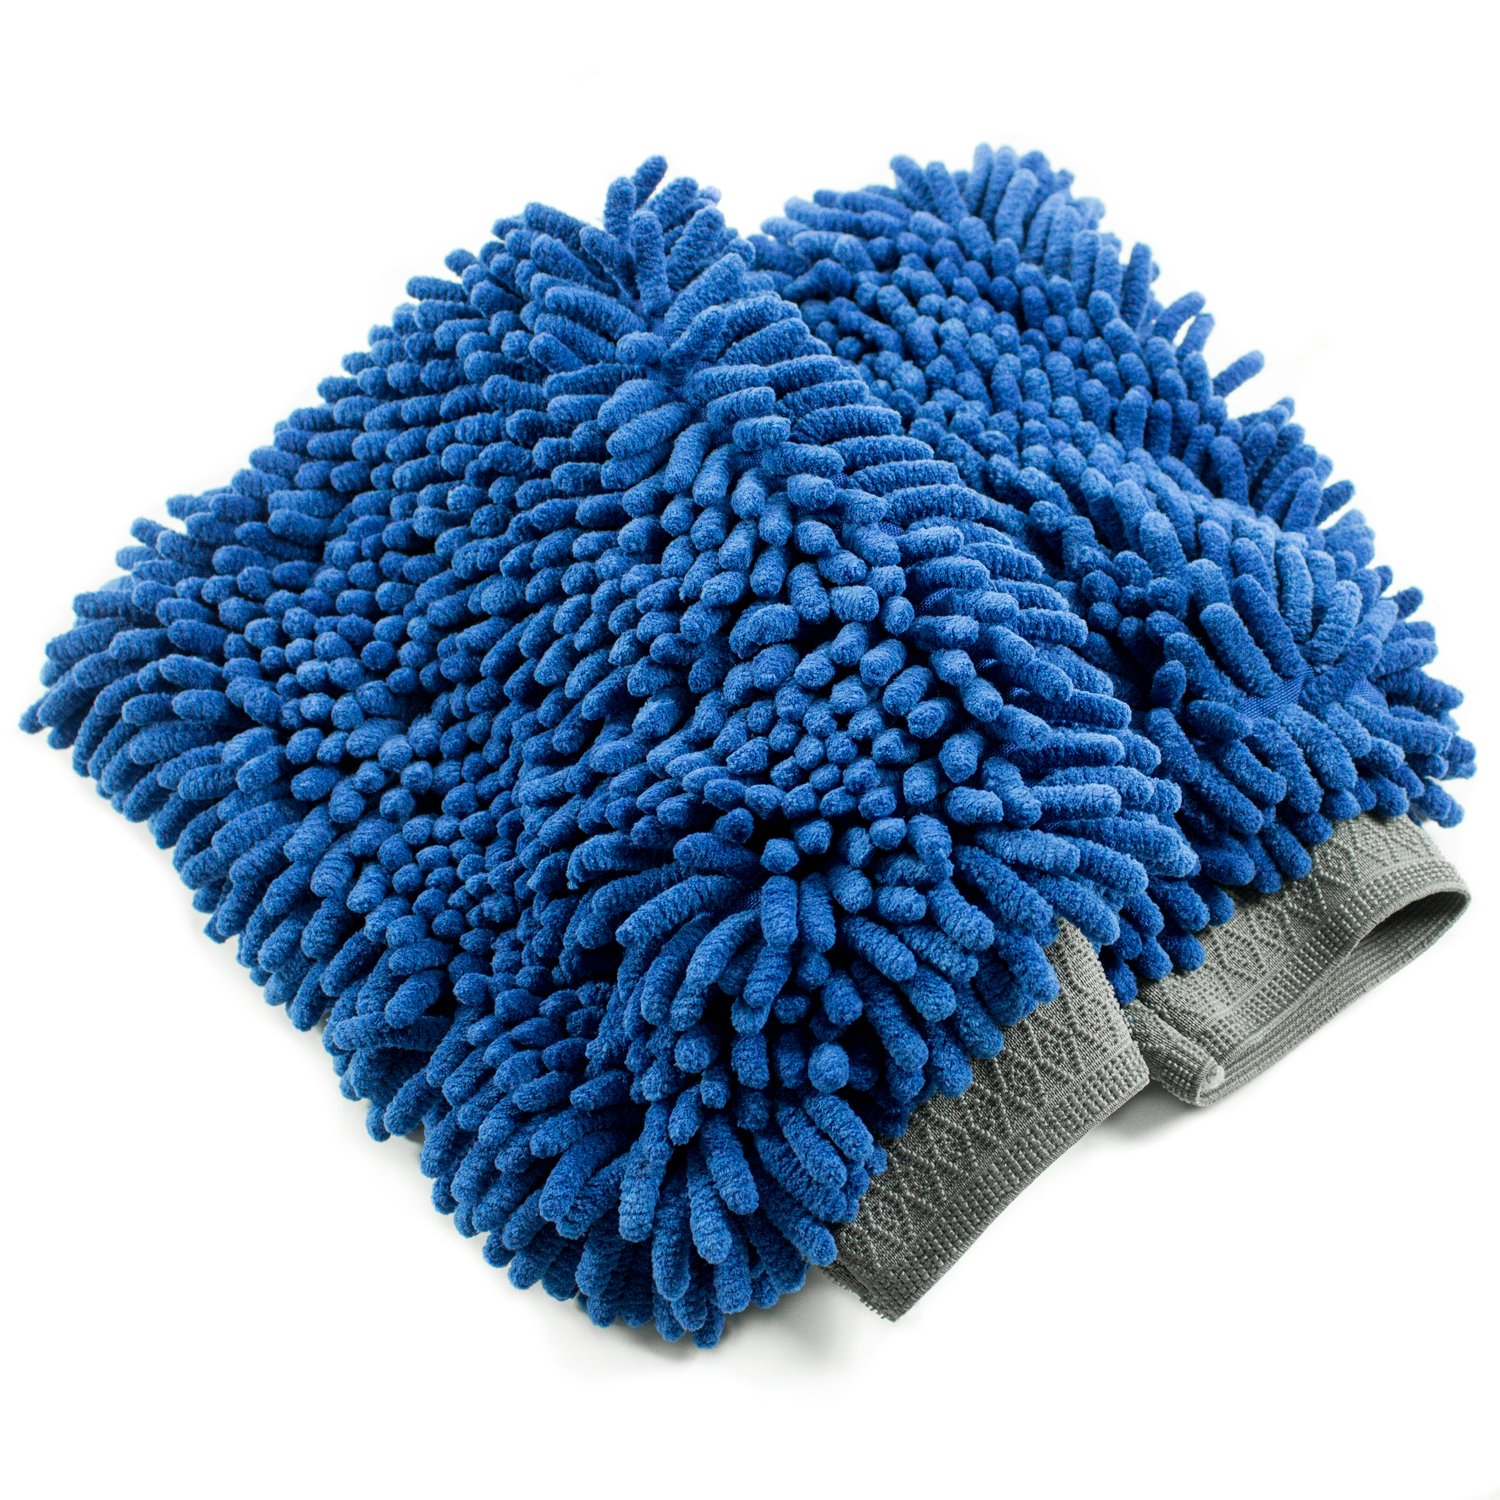 Zwipes 757 Microfiber Hand Mop, Pack of 2